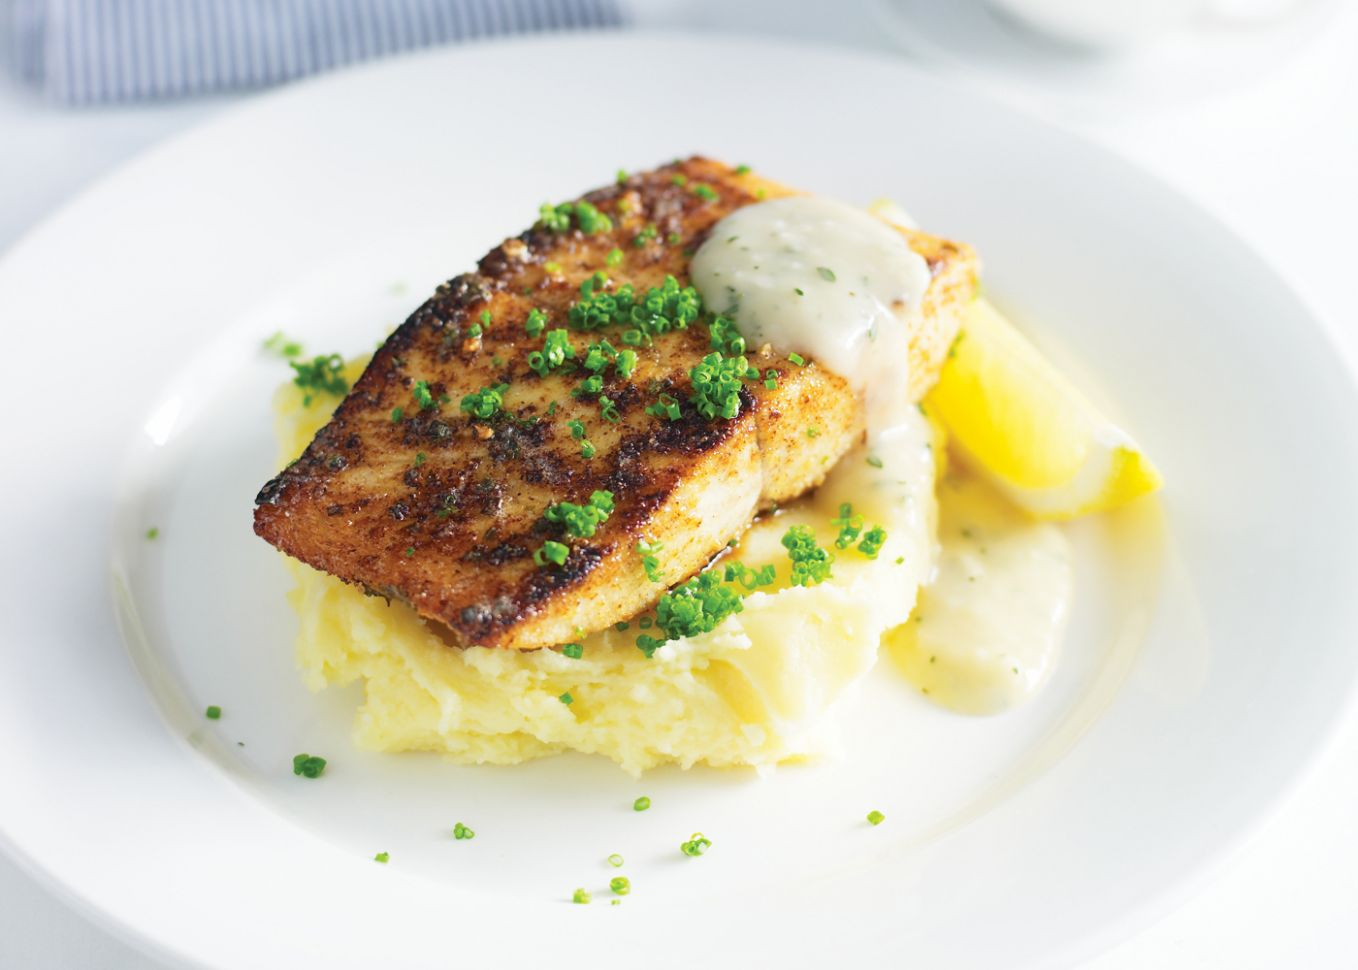 Pan-fried kingfish with creamy mashed potatoes | FOODWISE